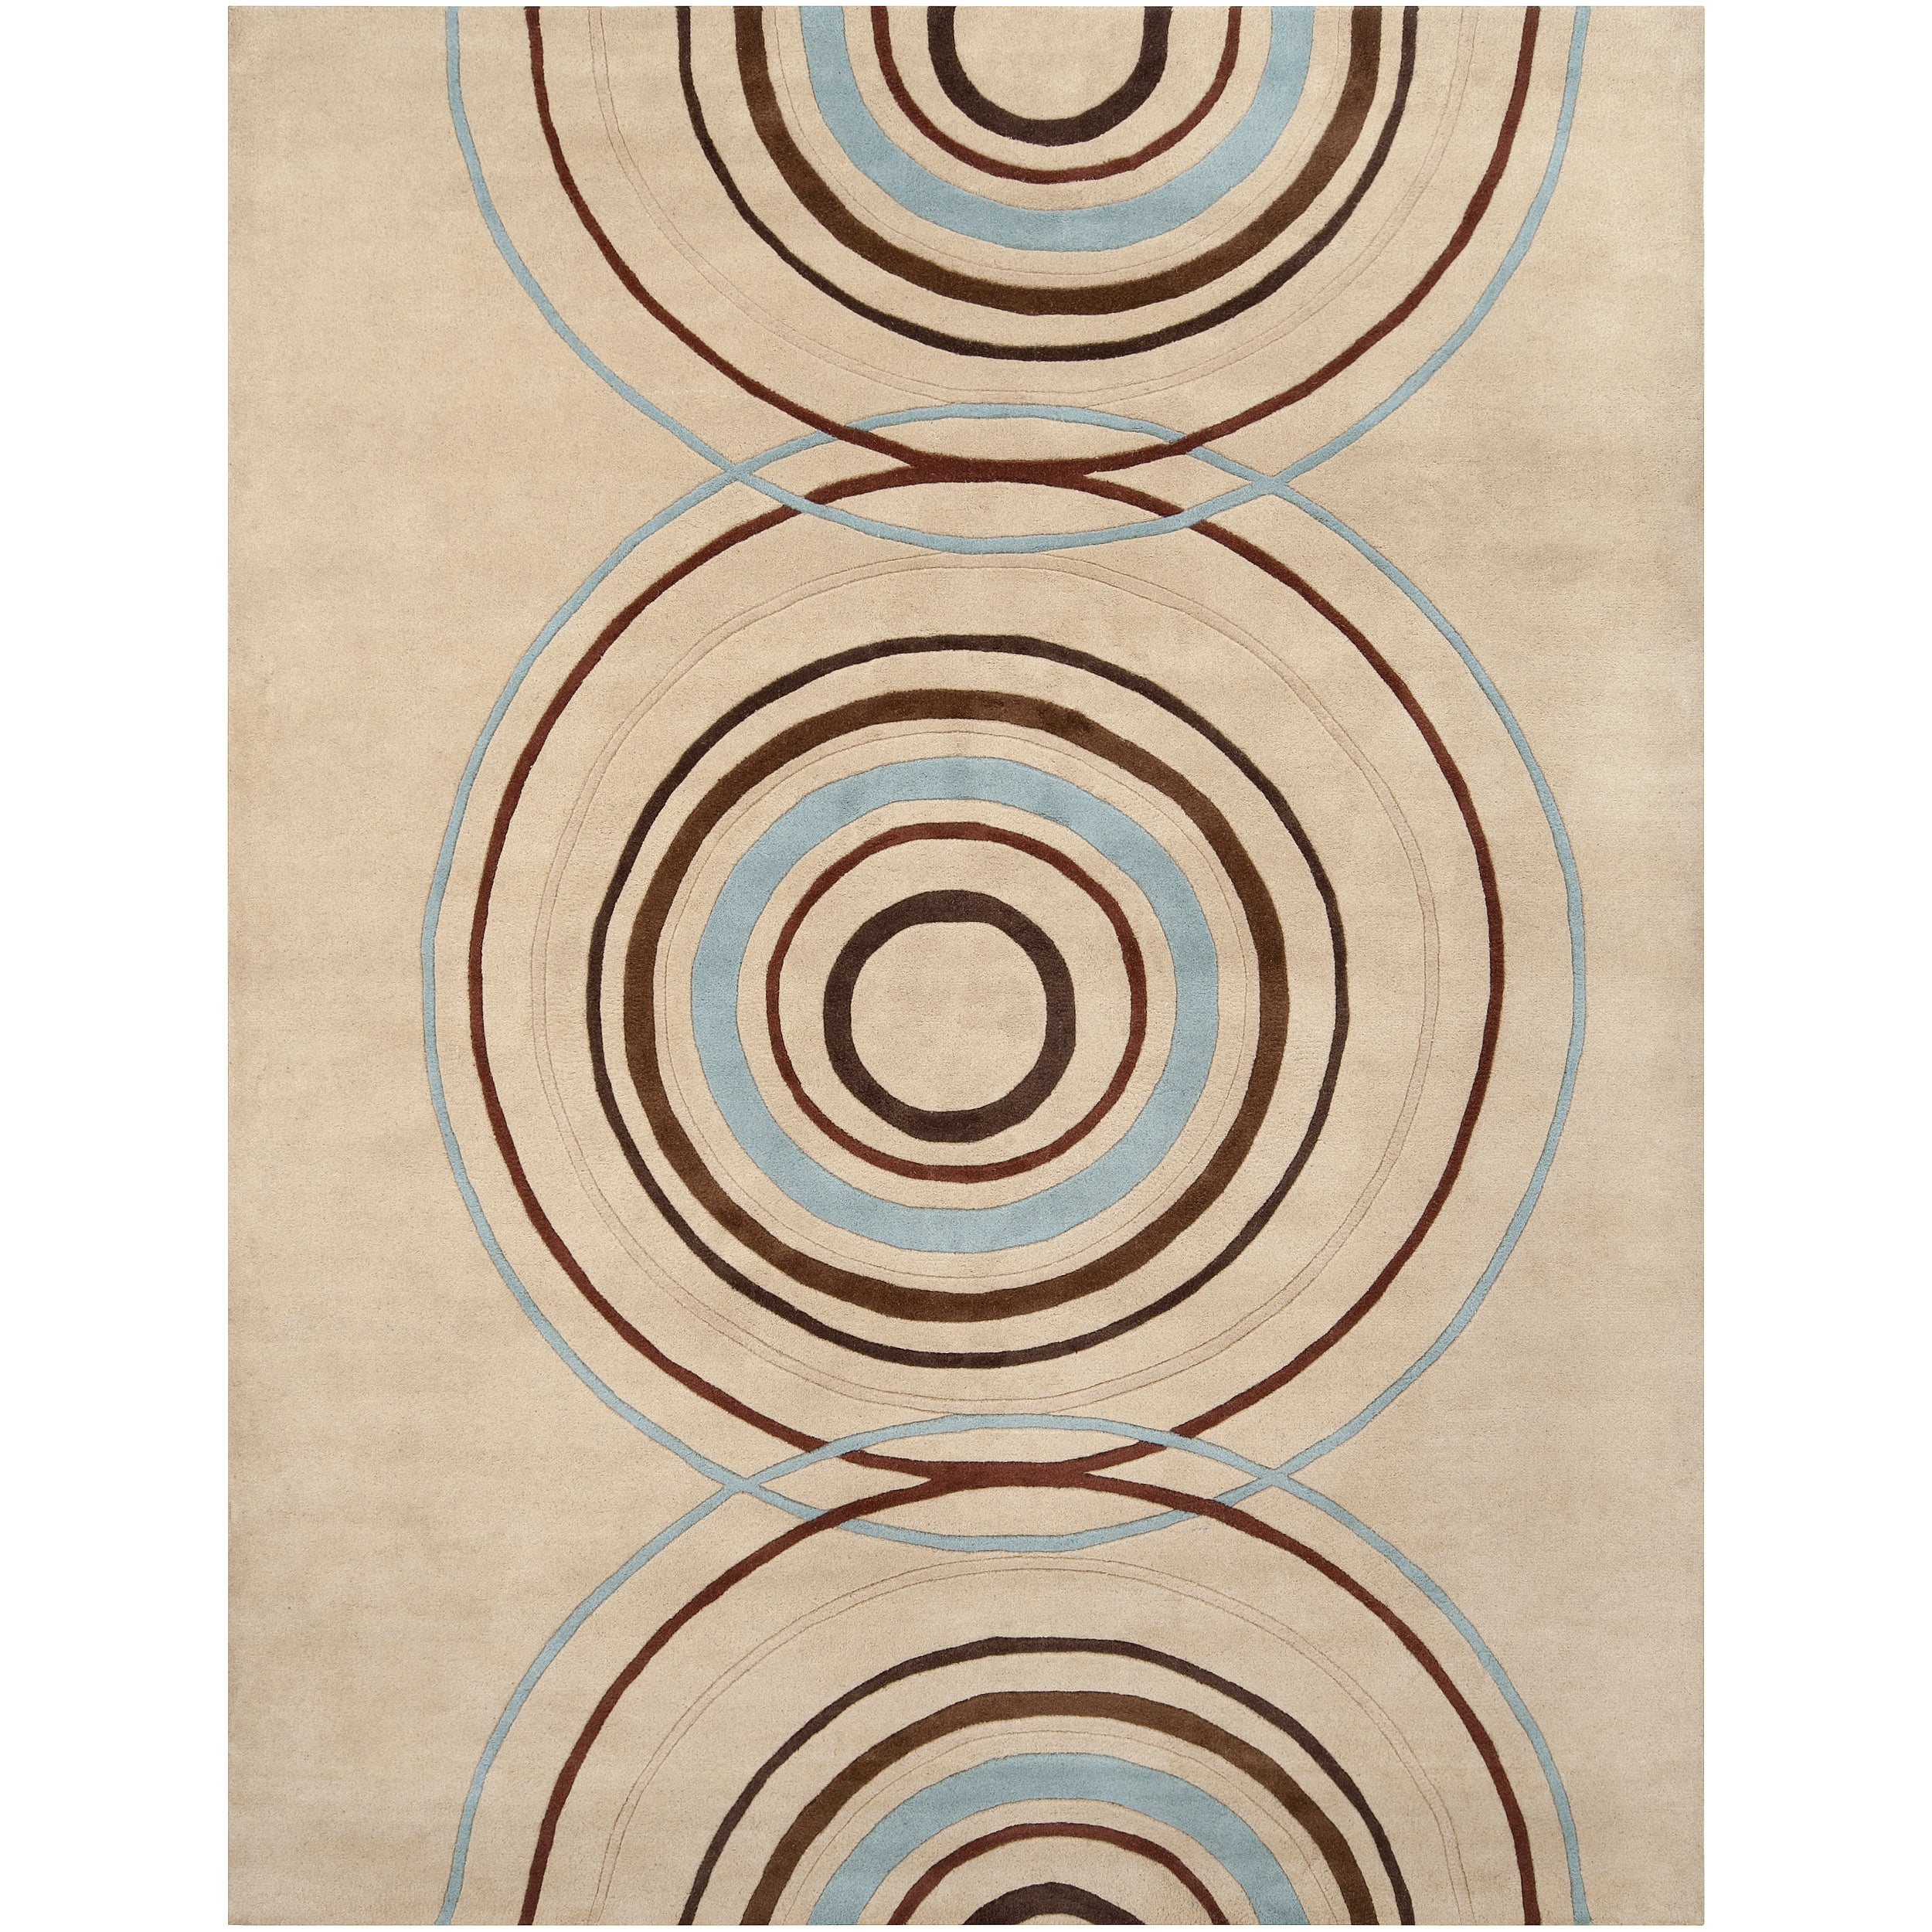 Hand-tufted Beige Contemporary Circles Brierfield Wool Geometric Rug (9' x 12')